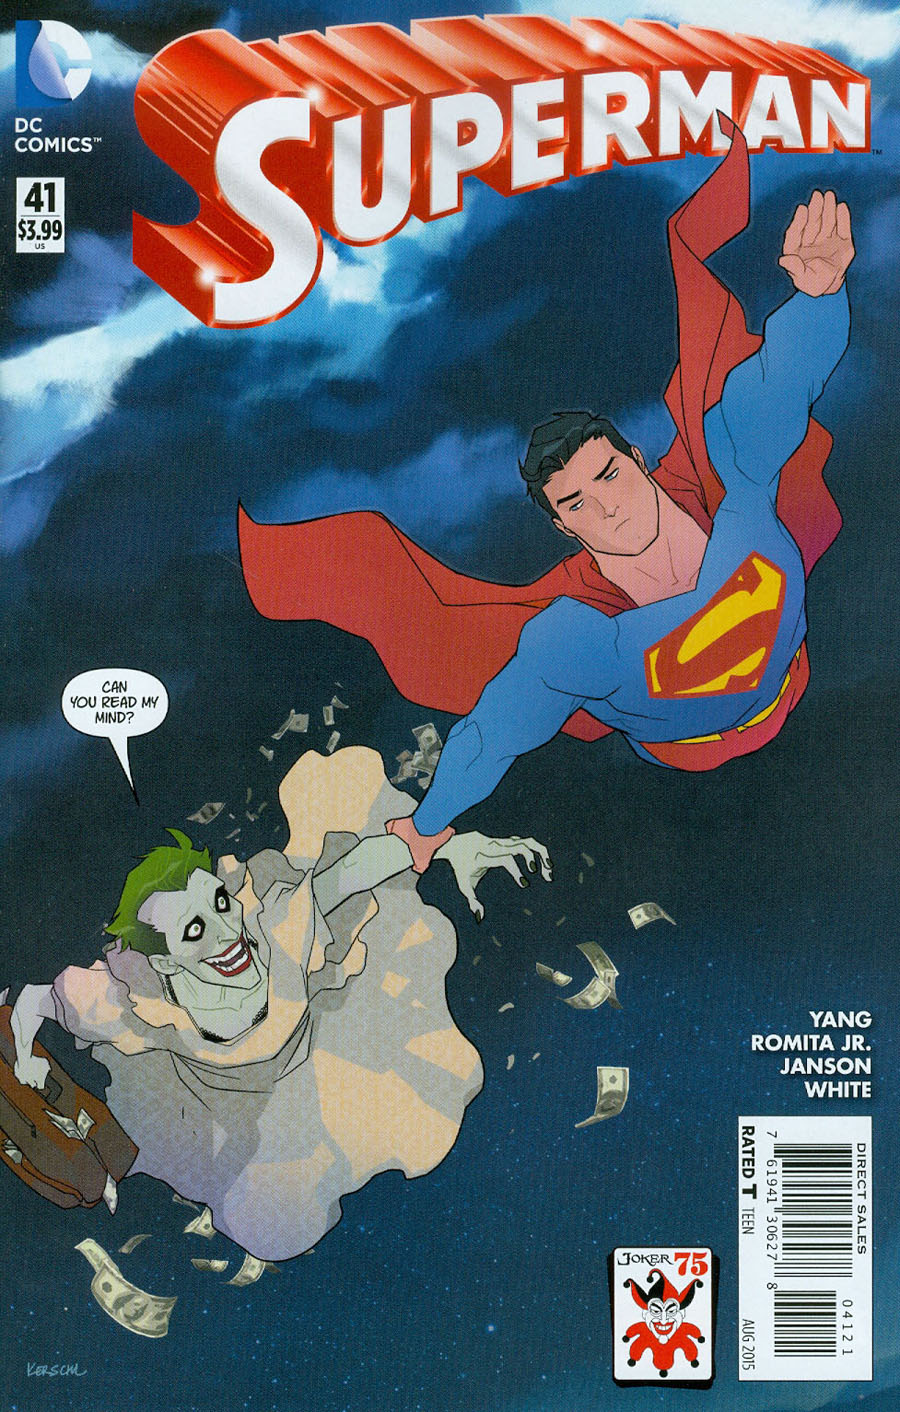 Superman Vol 4 #41 Cover B Variant Karl Kerschl The Joker 75th Anniversary Cover